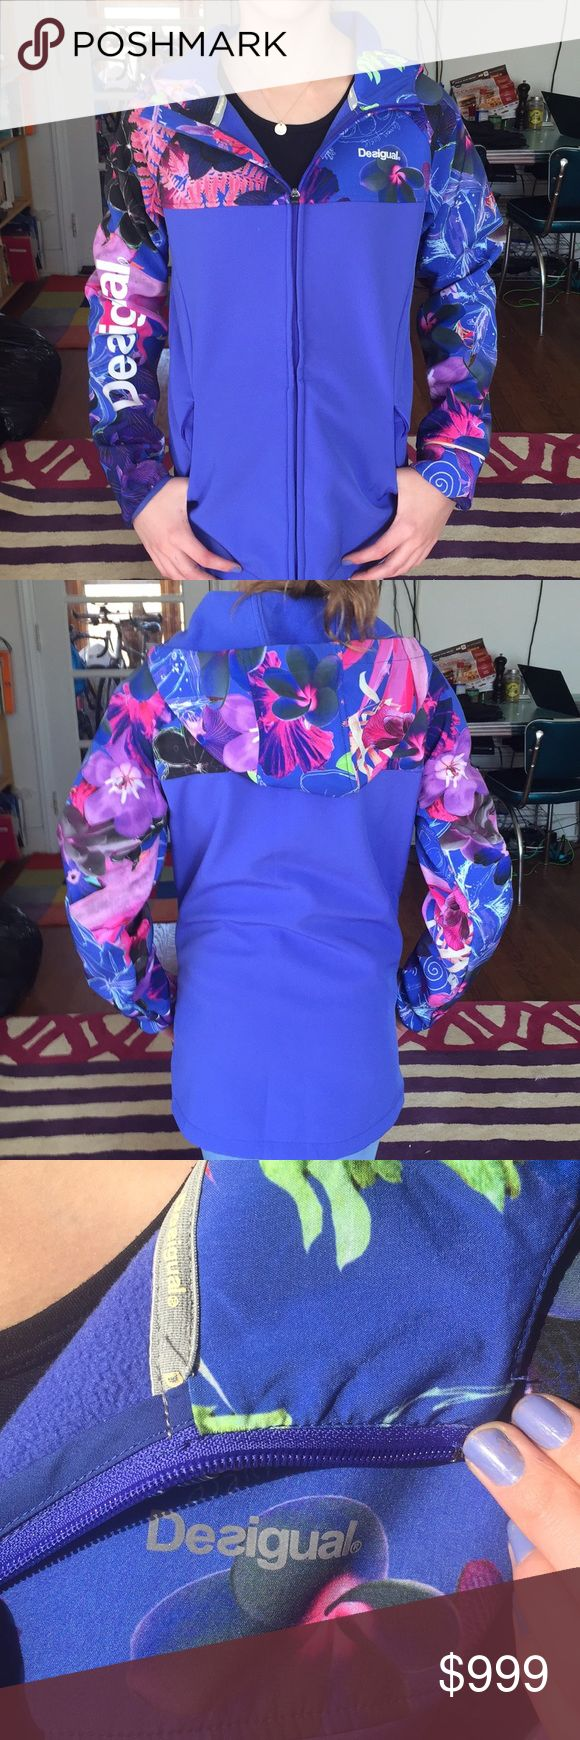 Desigual fleece sporty excellent condition Small Sporty